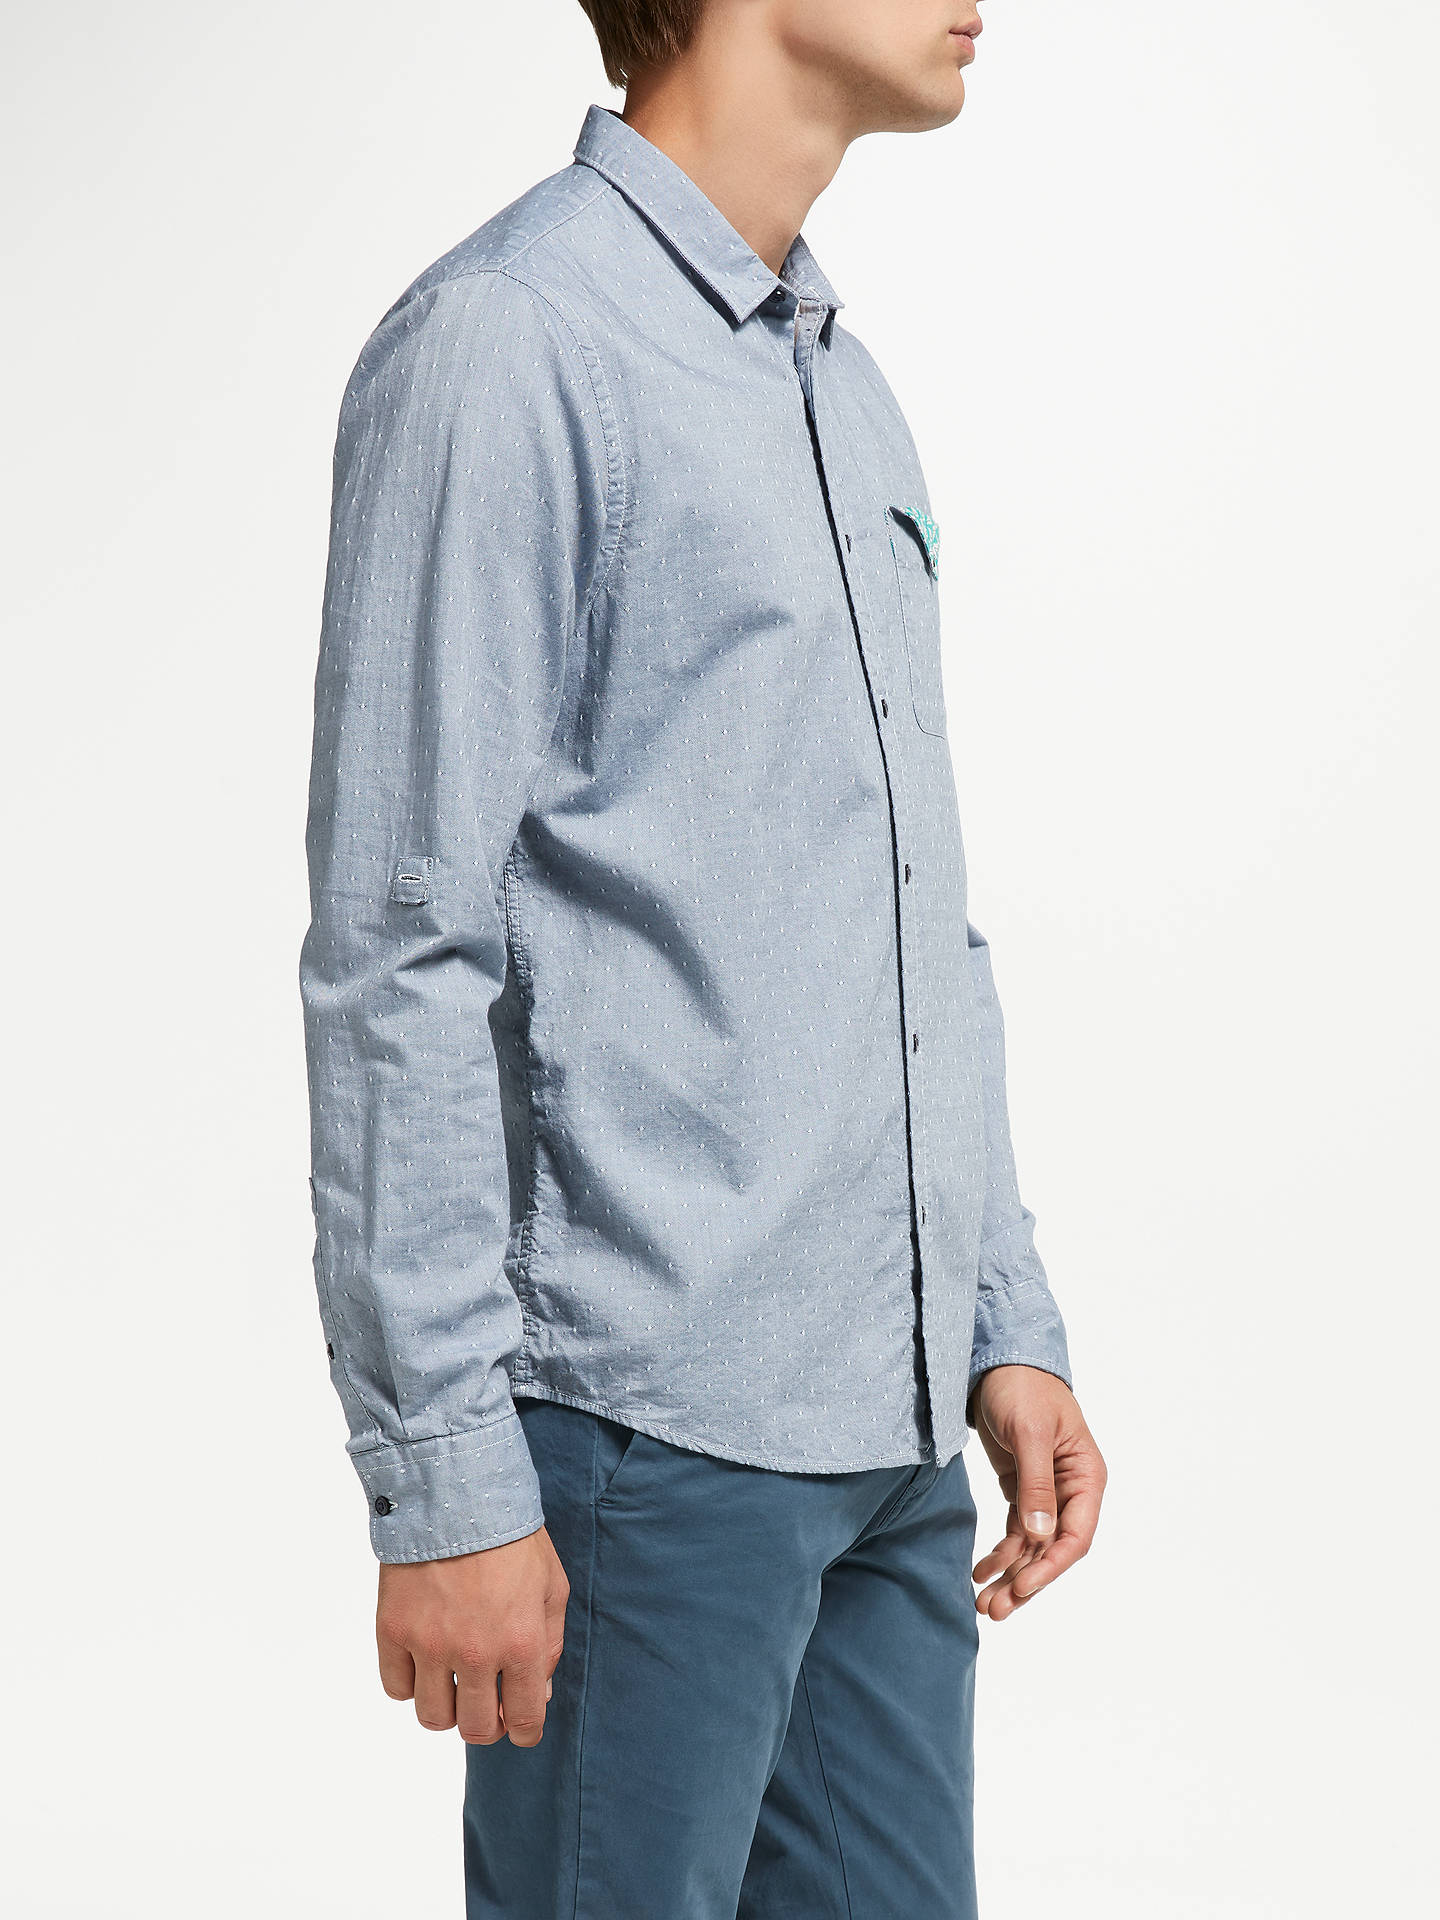 Buy Scotch & Soda Shirt with Chest Pocket, Blue, L Online at johnlewis.com